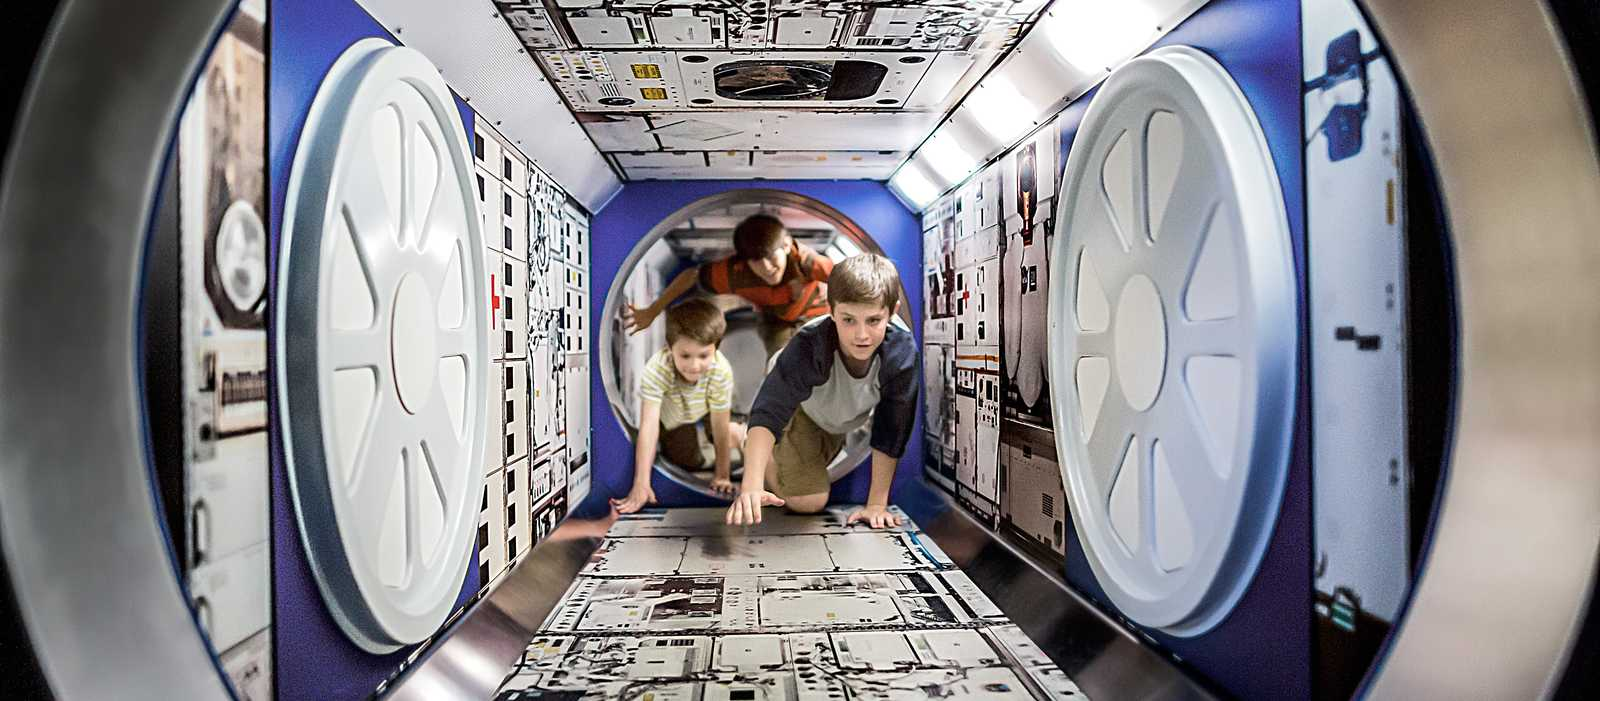 Kinder erforschen das Kennedy Space Center auf Merritt Island in Florida